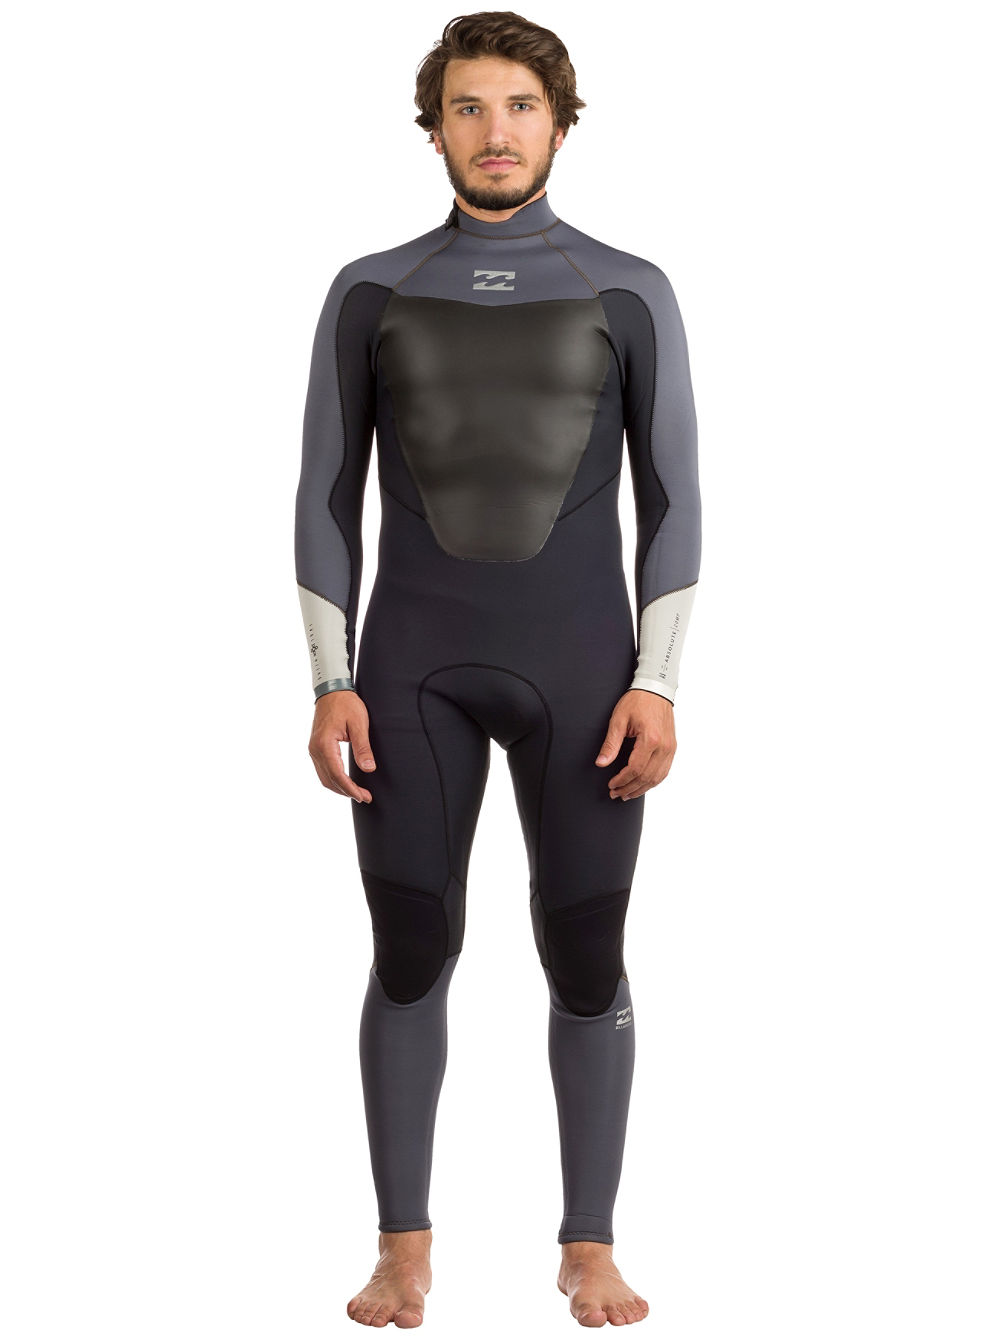 3/2 Absolute Back Zip Wetsuit